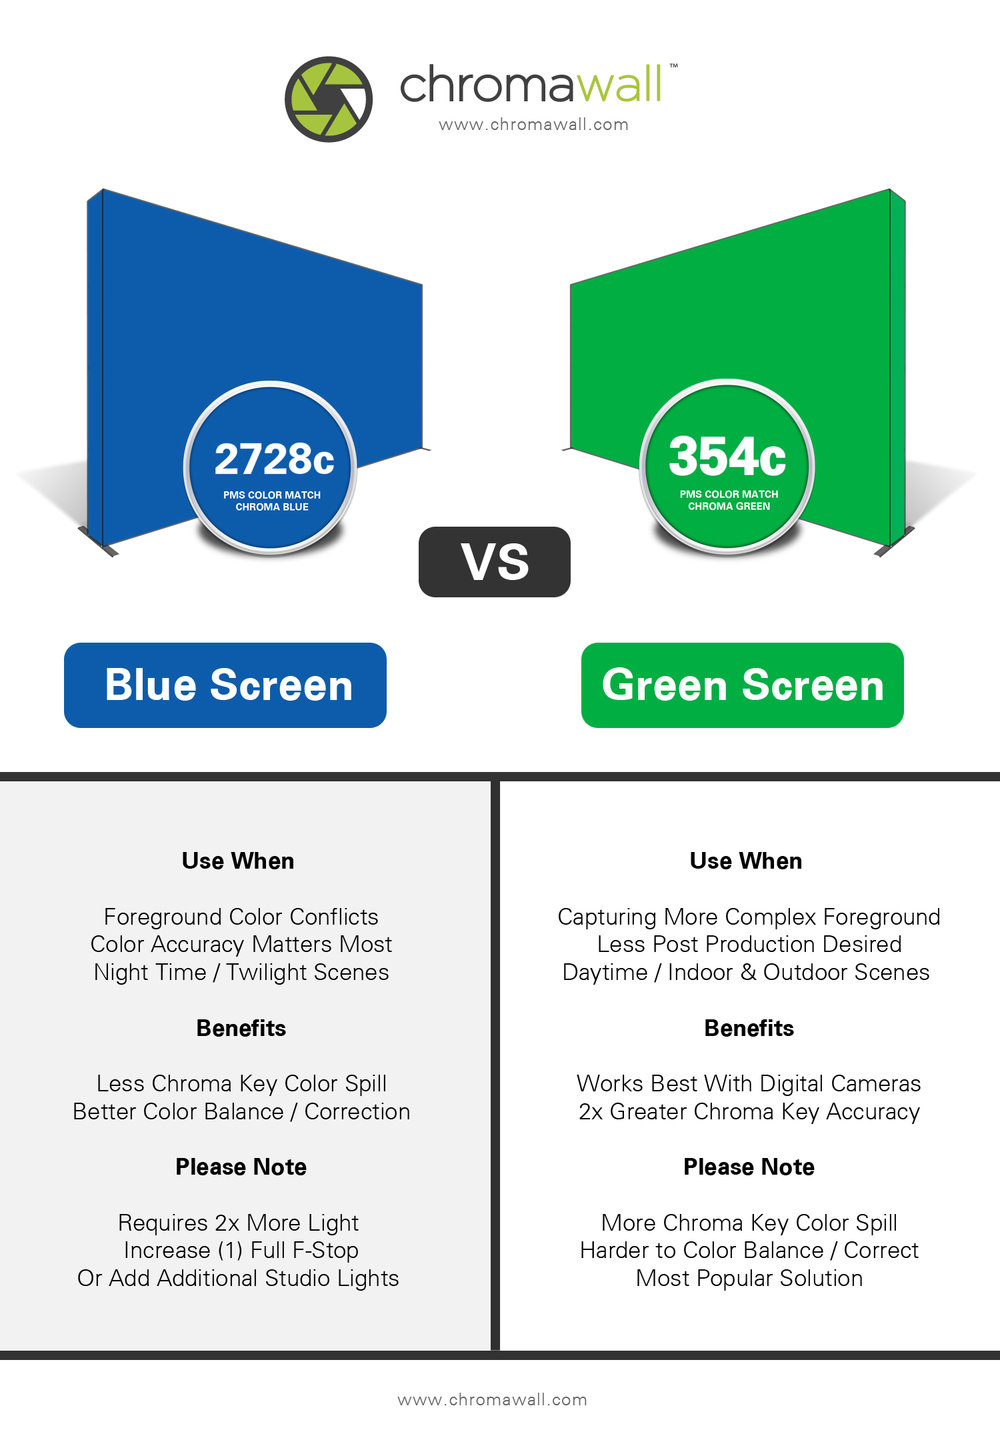 Blue Screen vs. Green Screen Infographic